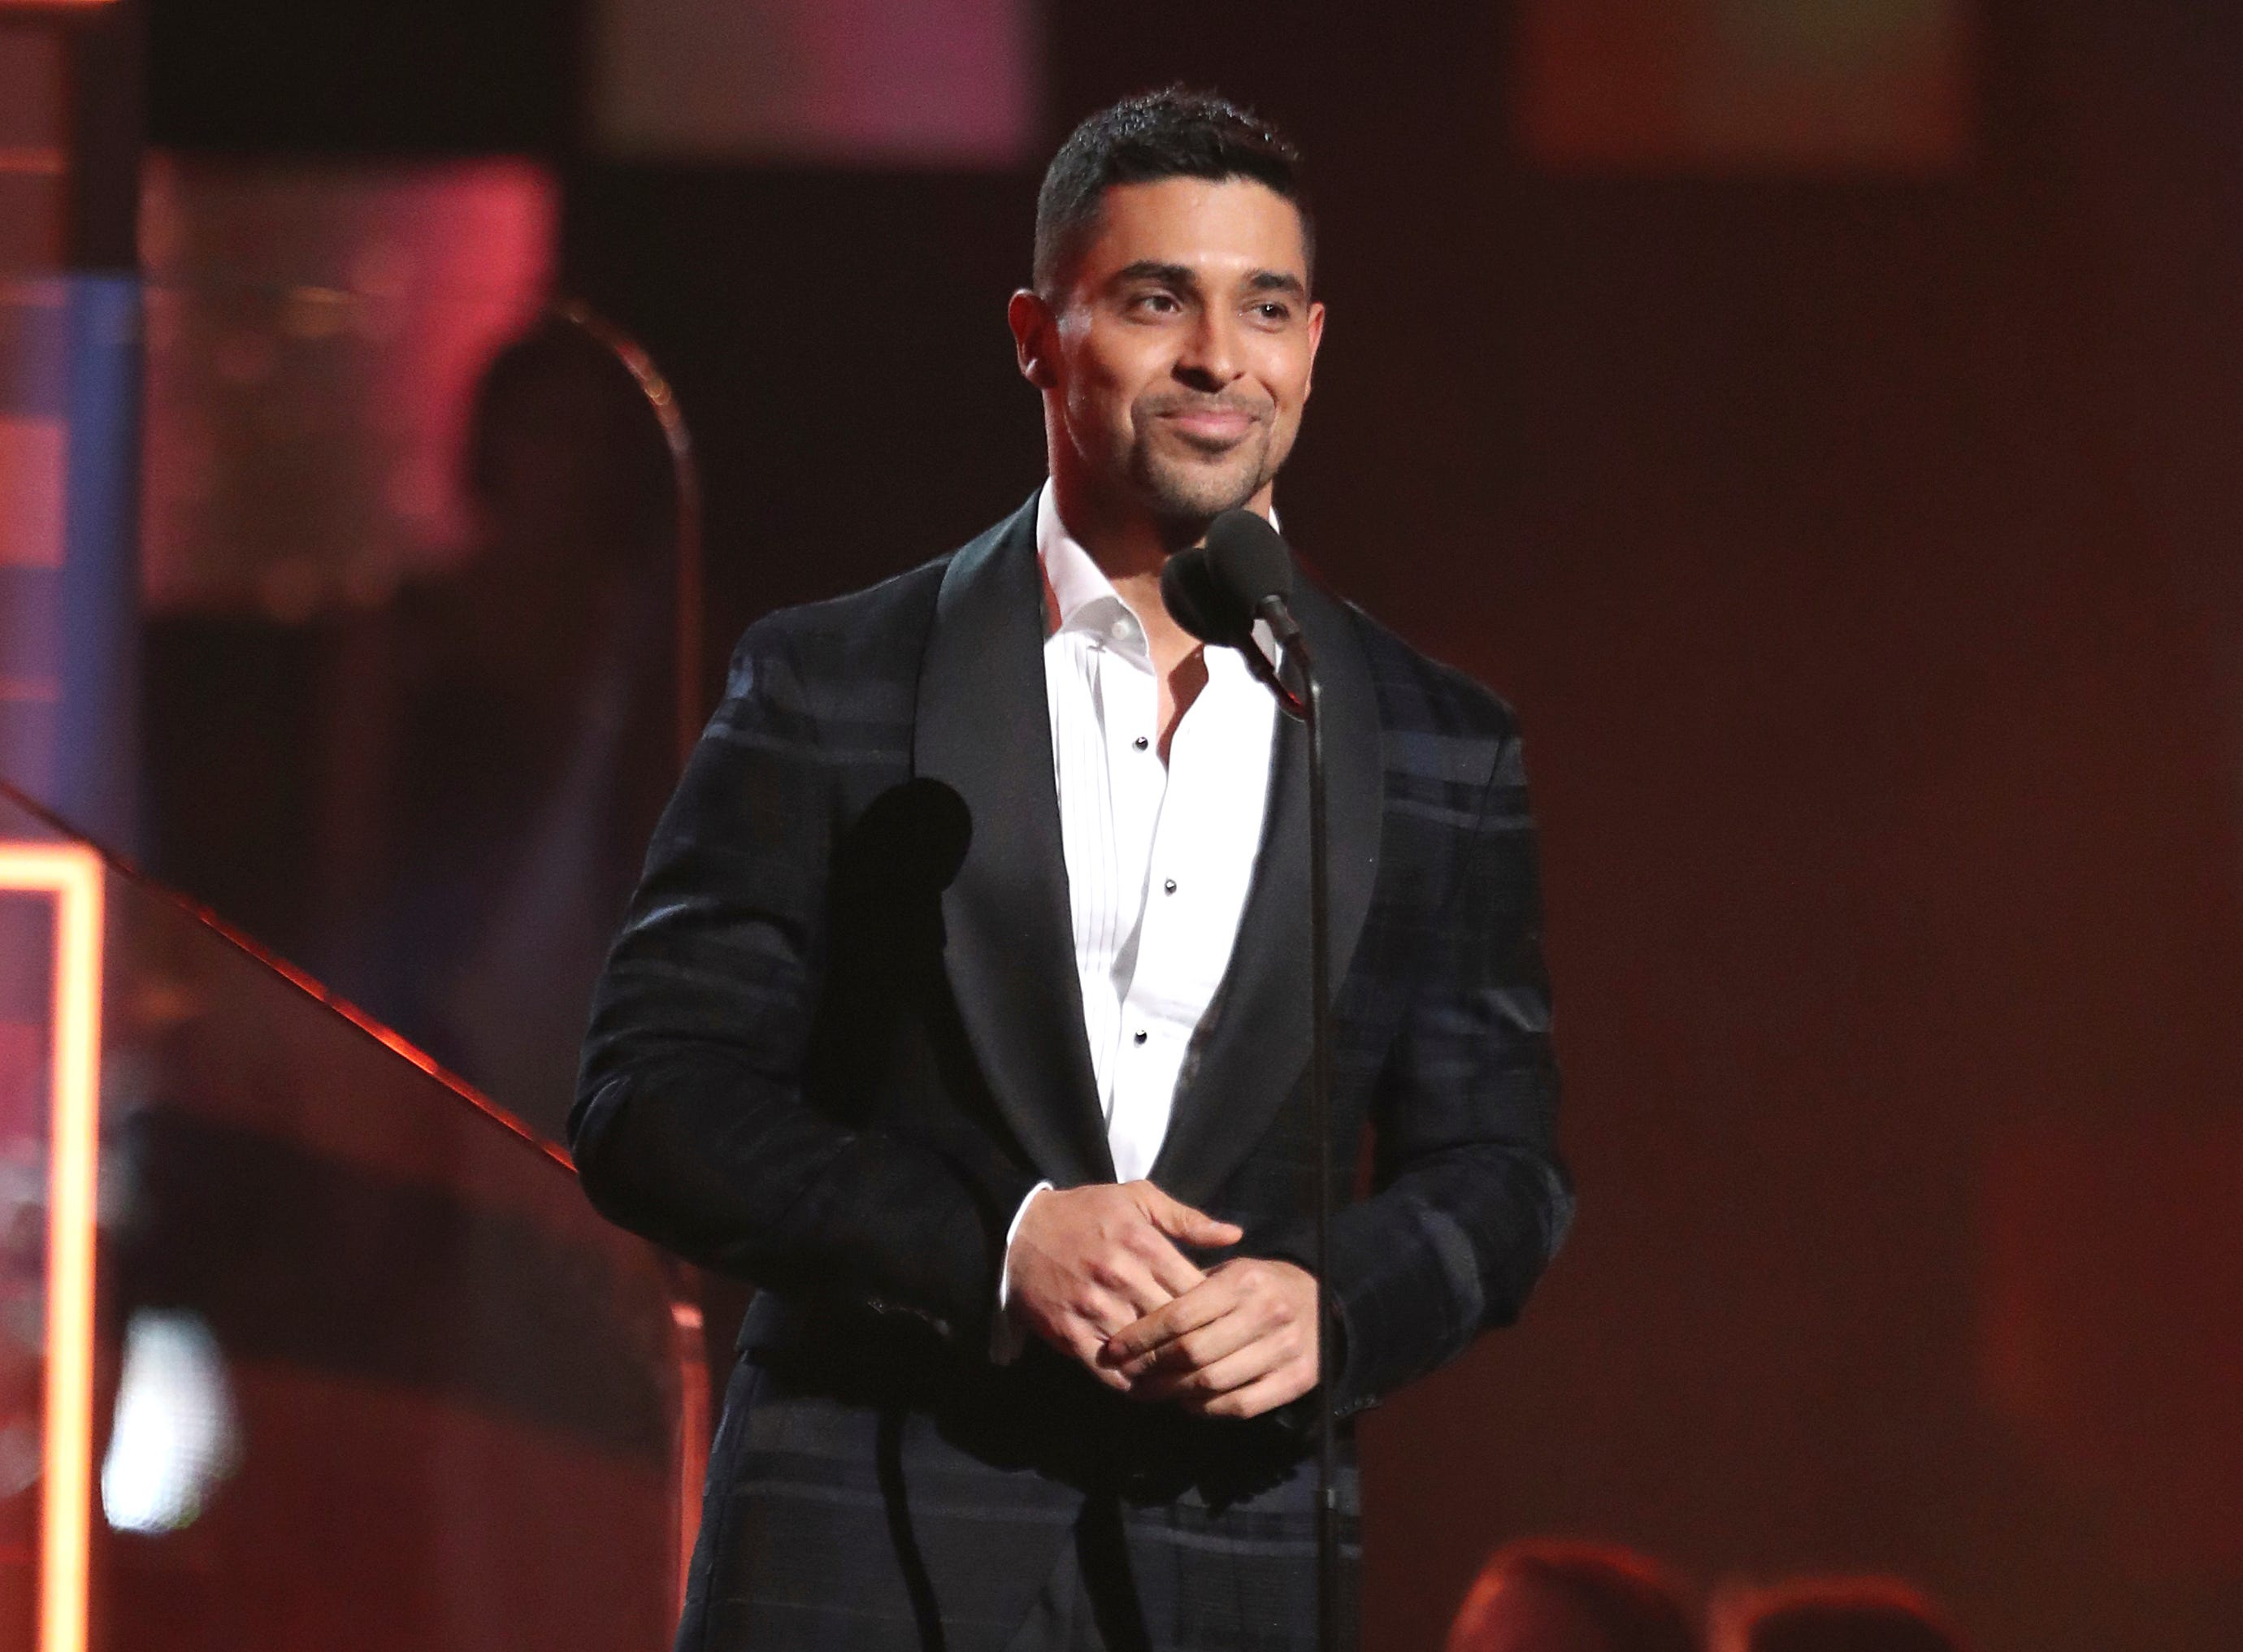 Wilmer Valderrama introduces a performance by Dua Lipa and St. Vincent at the 61st annual Grammy Awards.